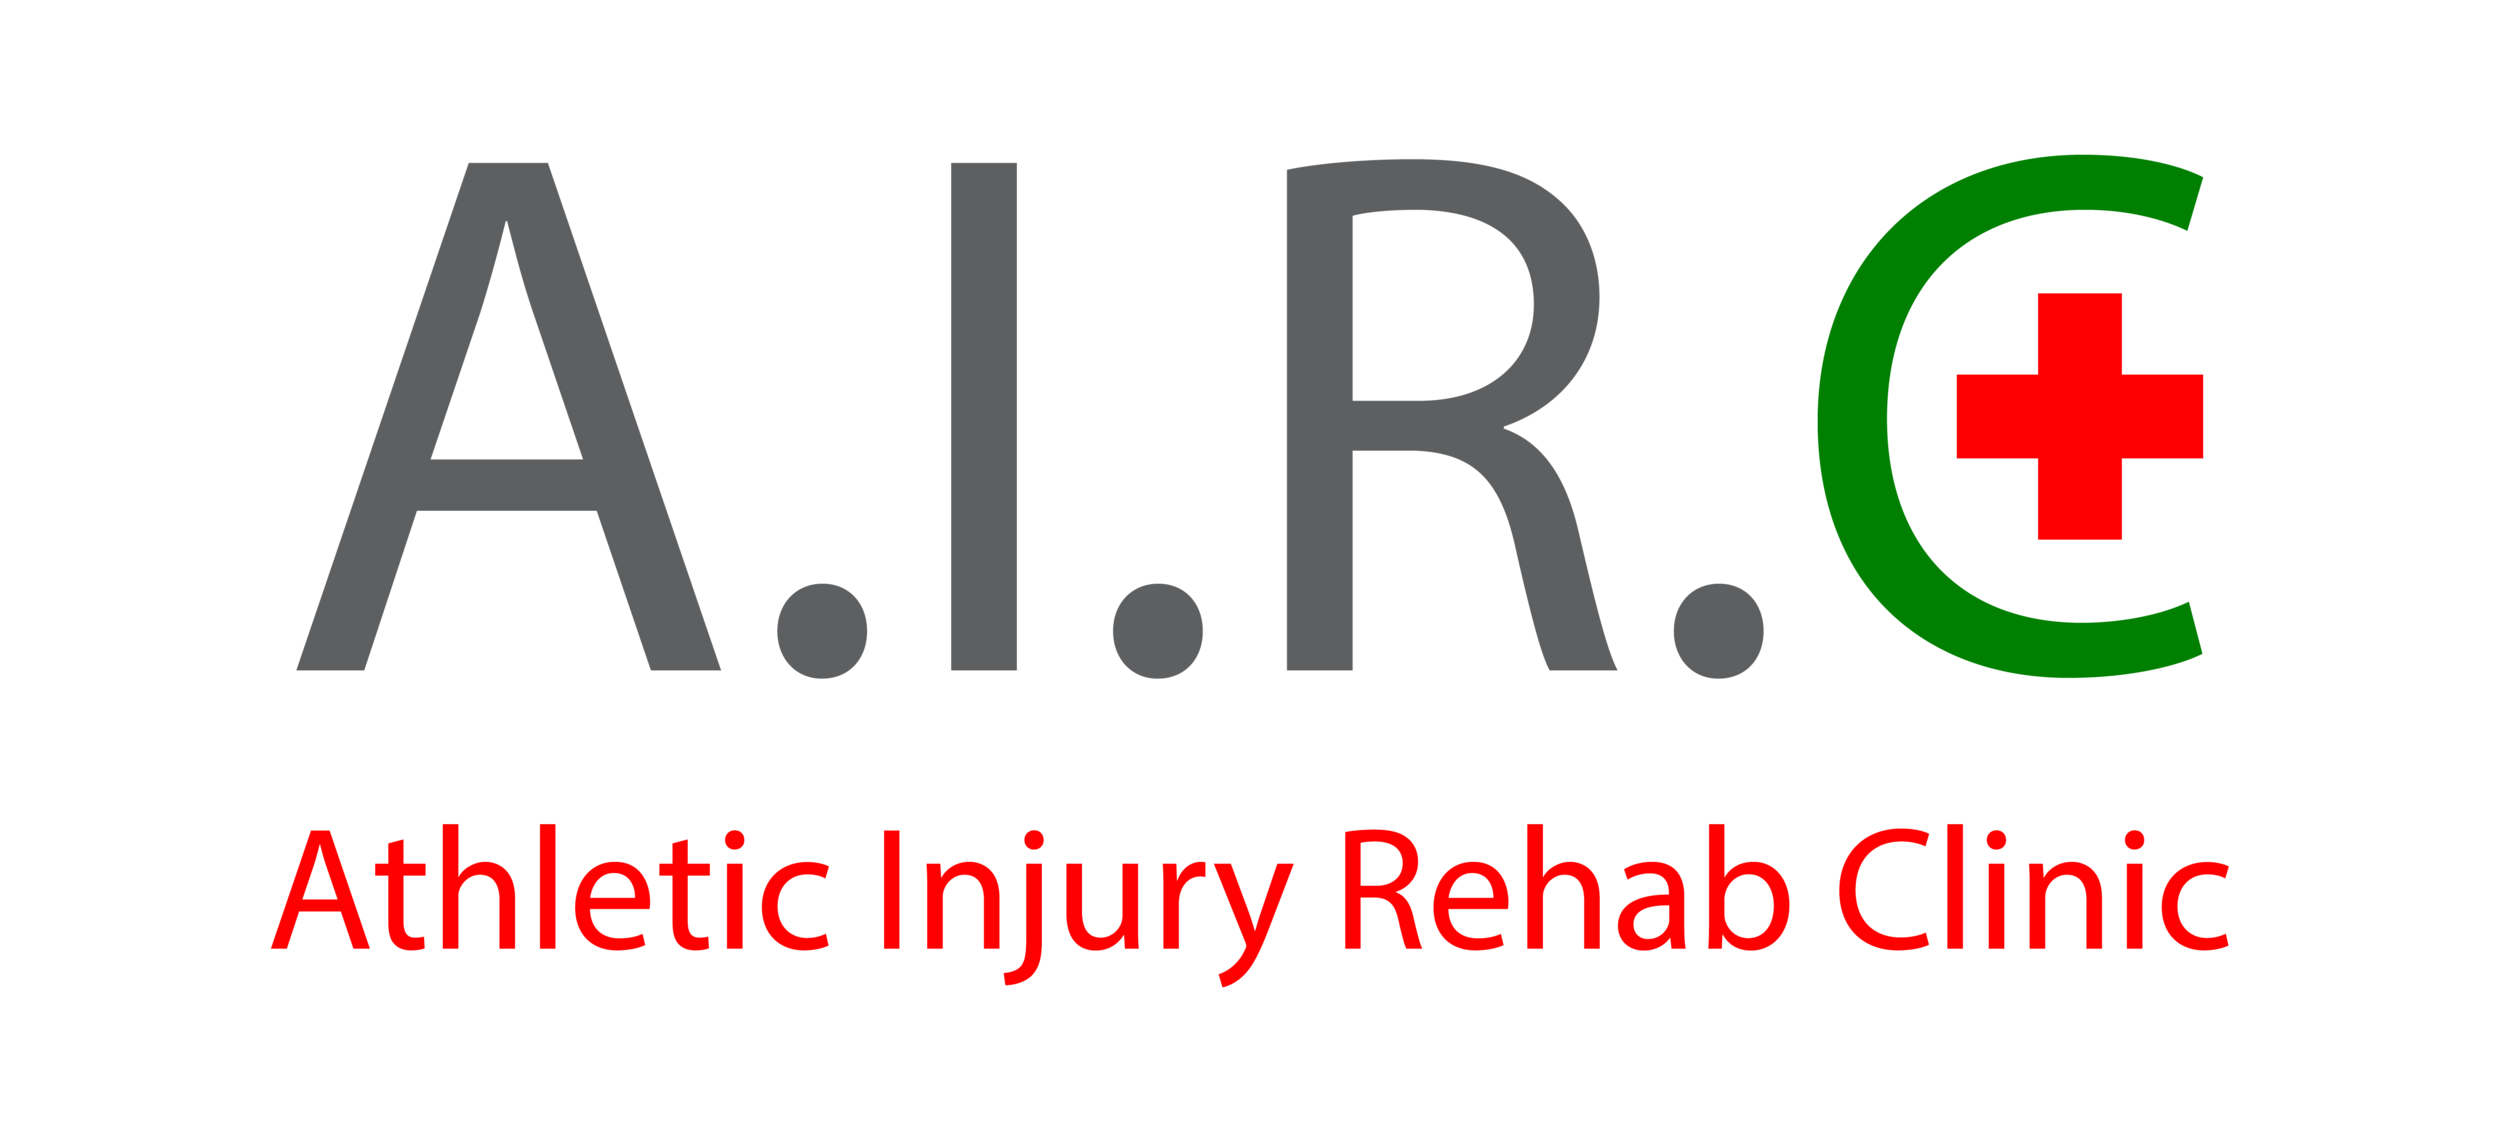 Athletic Injury Rehab Clinic